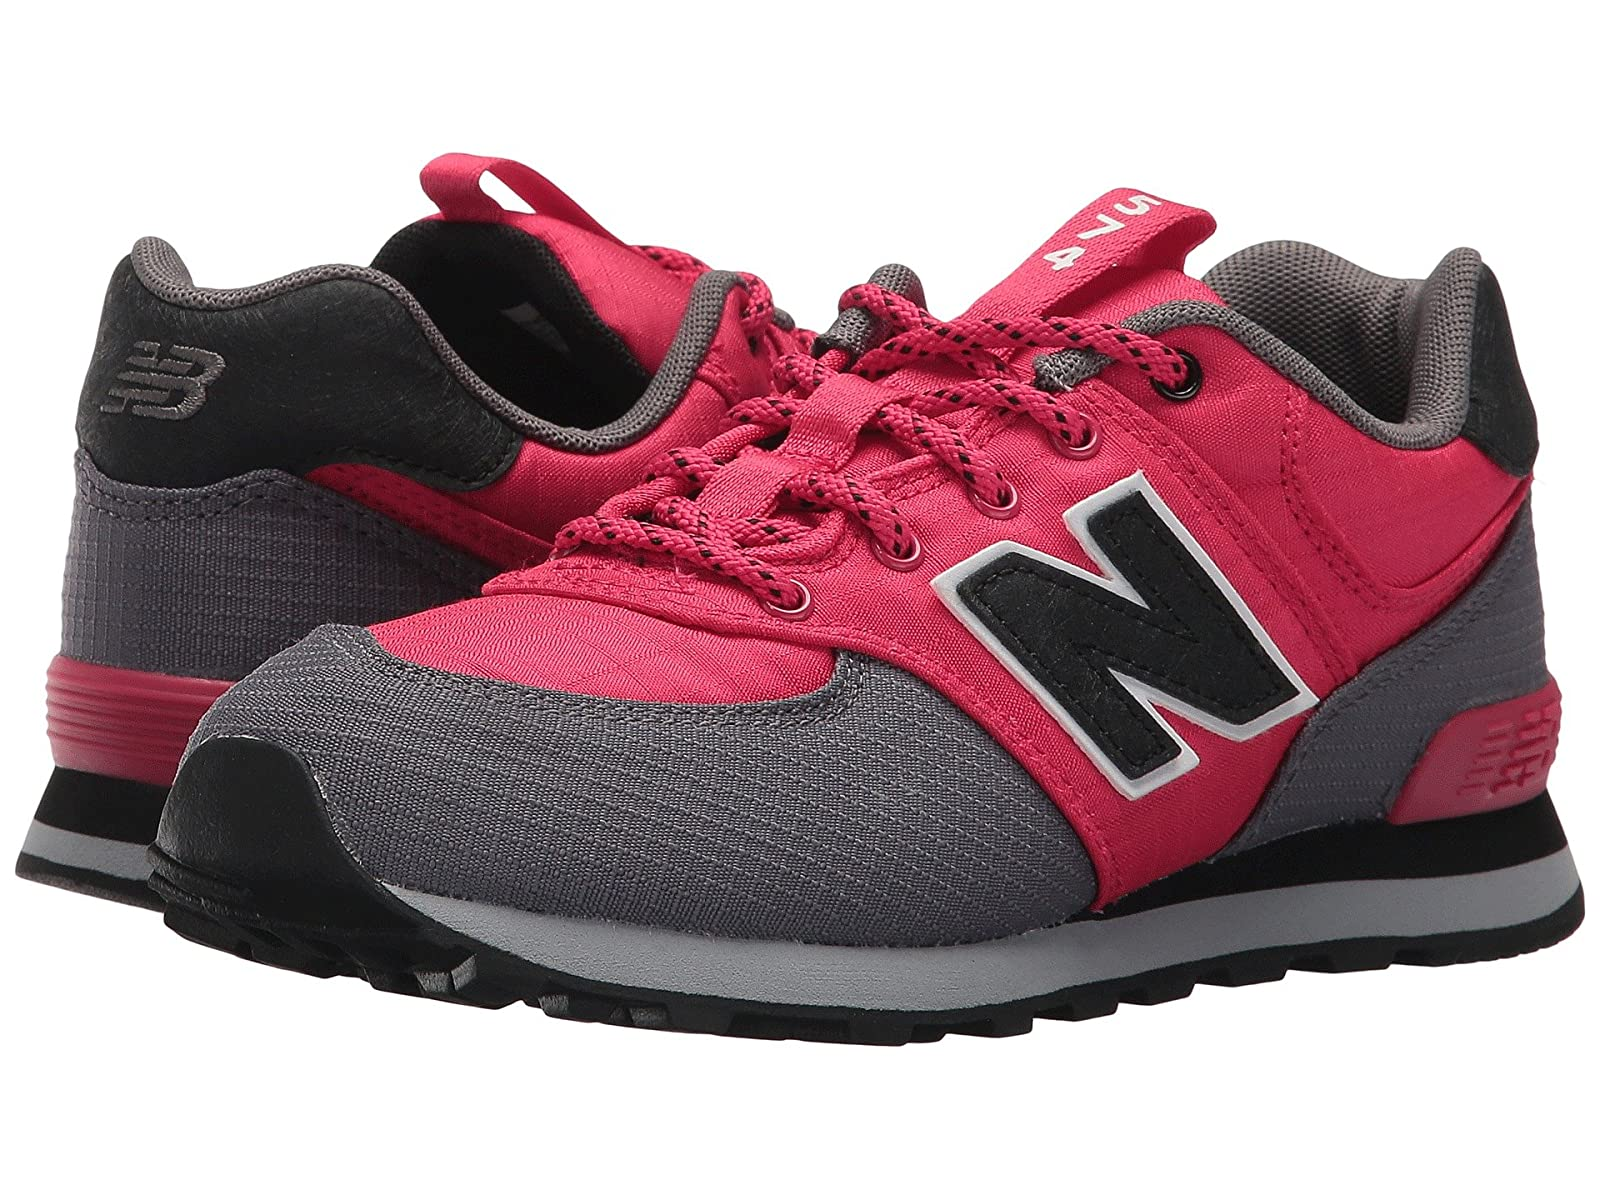 New Balance Kids 574 Breathe (Little Kid)Cheap and distinctive eye-catching shoes